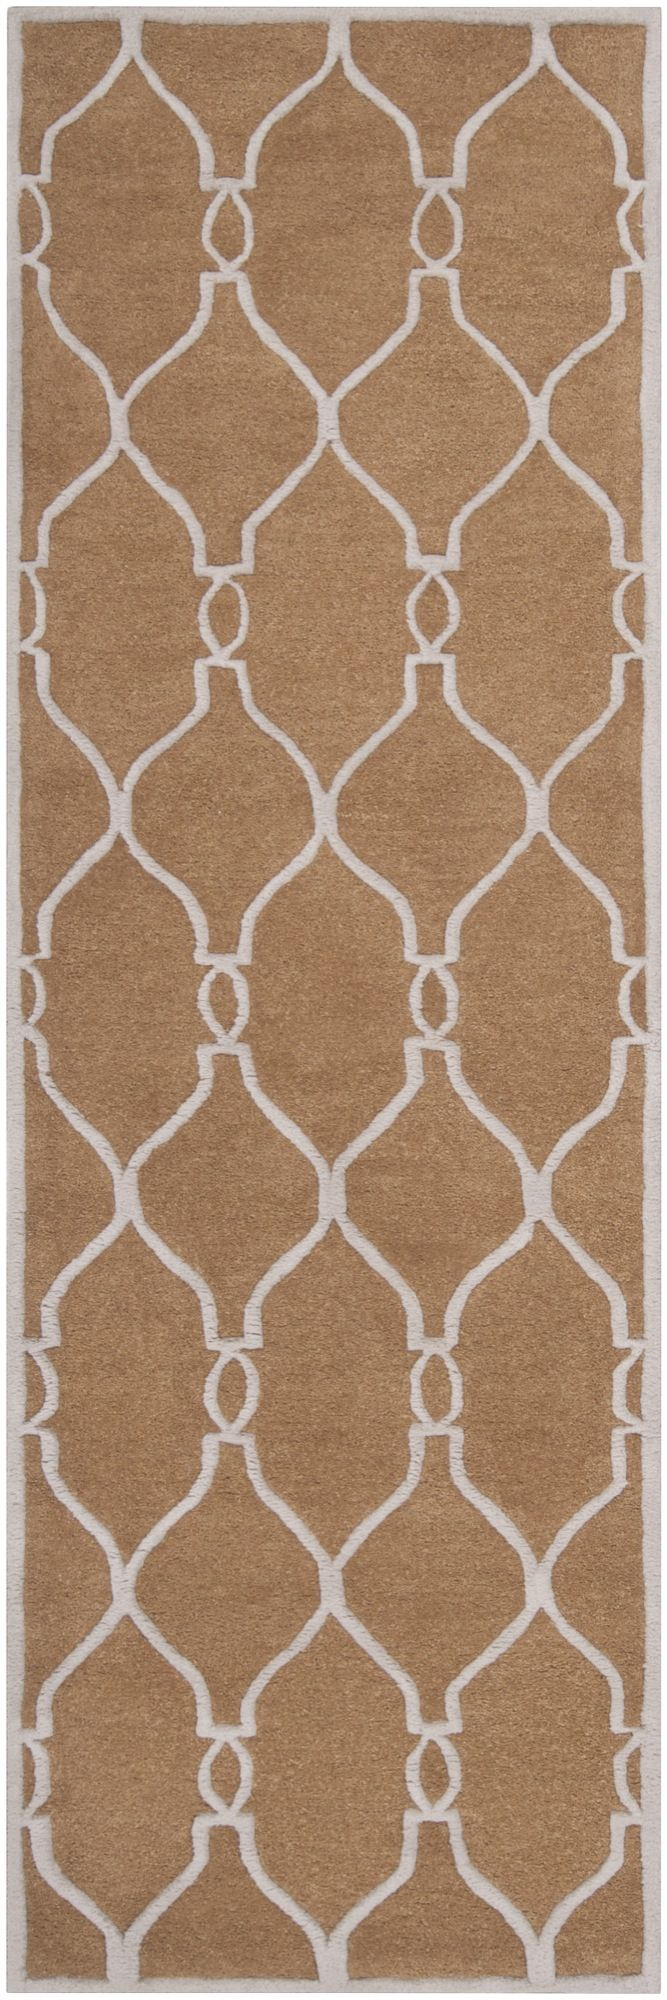 surya zuna transitional area rug collection